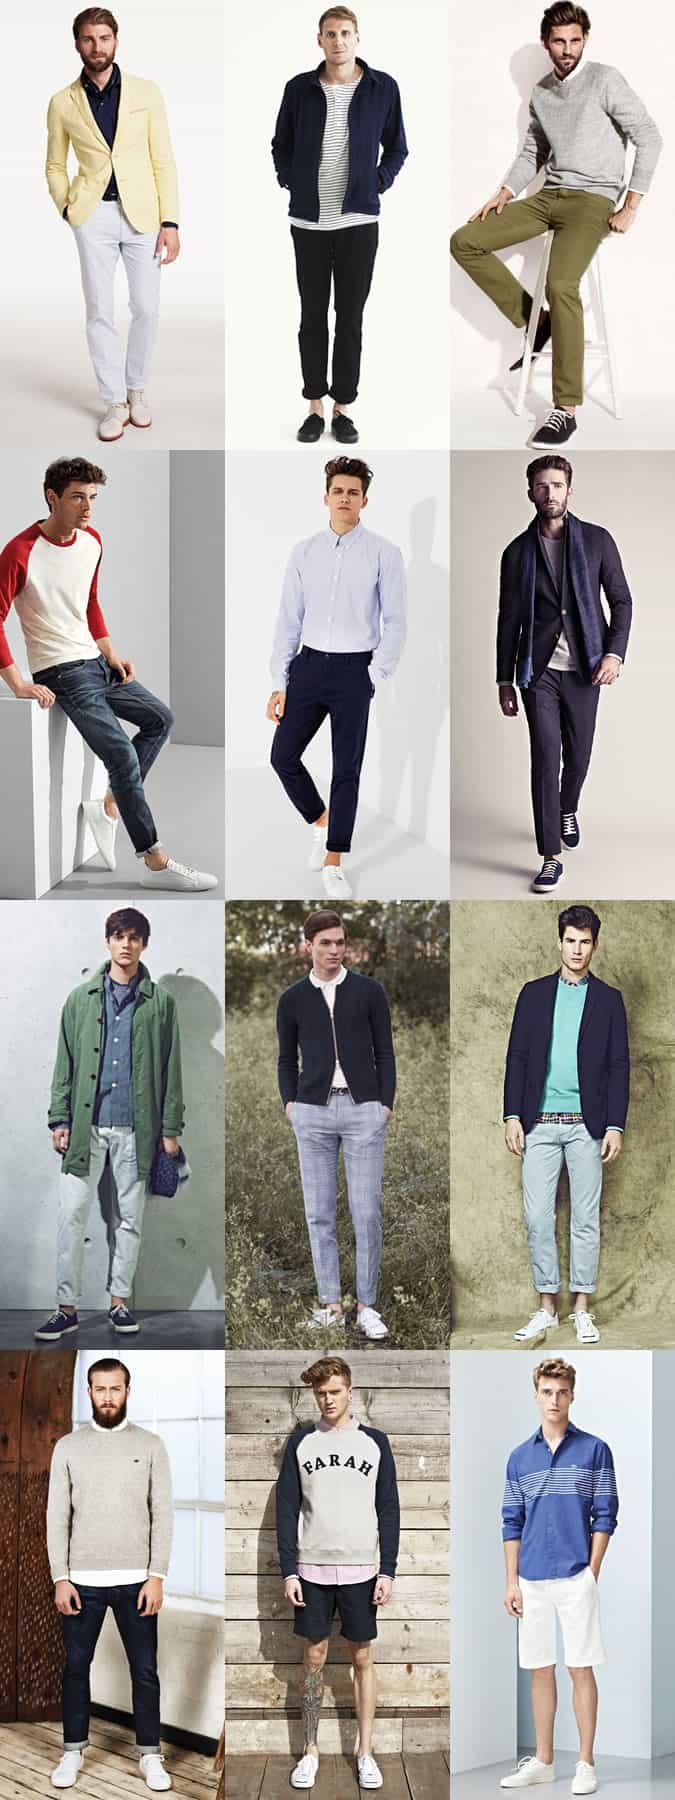 Men's Smart-Casual Trainers, Plimsolls and Derby Shoe Styling - Outfit Inspiration Lookbook